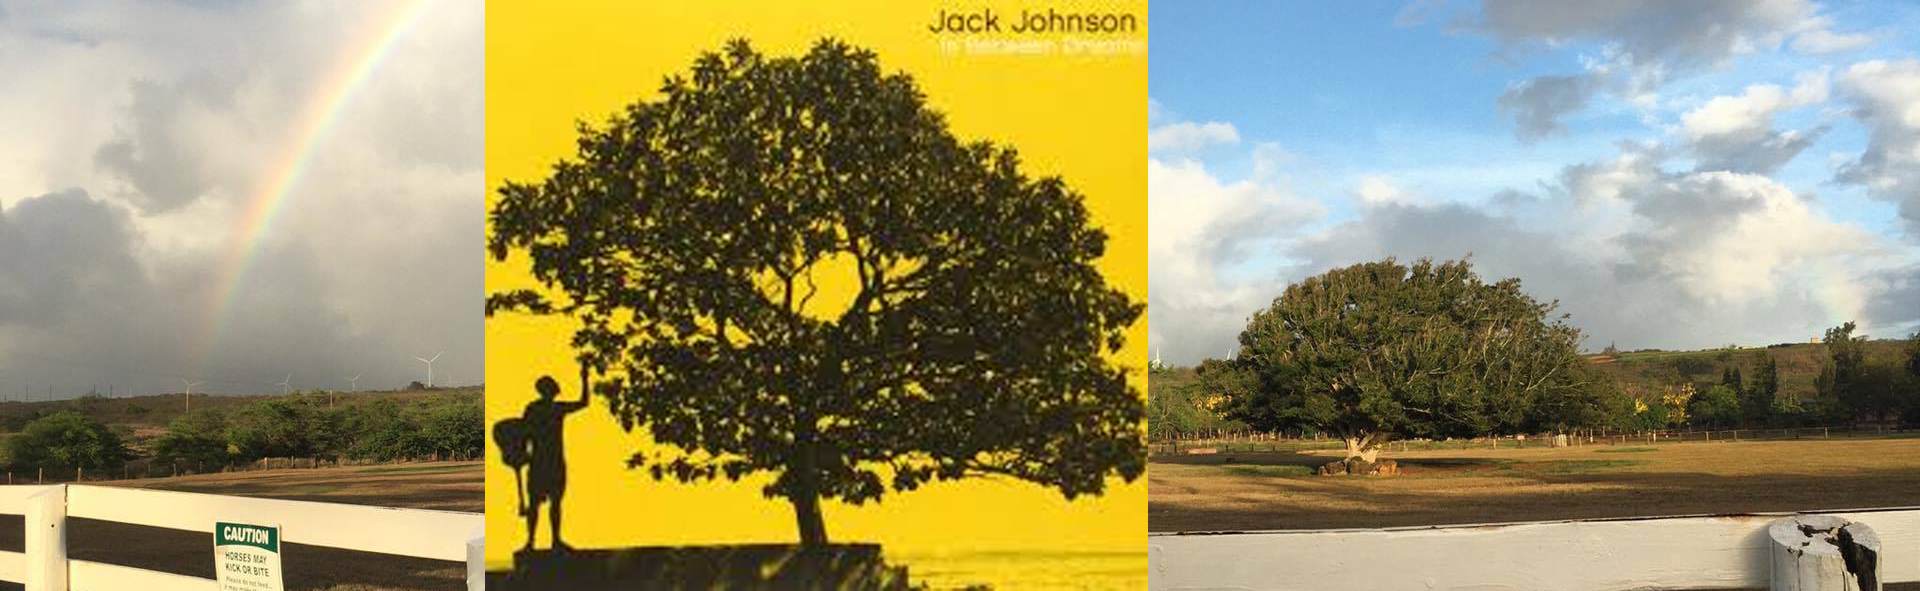 Jack Johnson, Hawaii